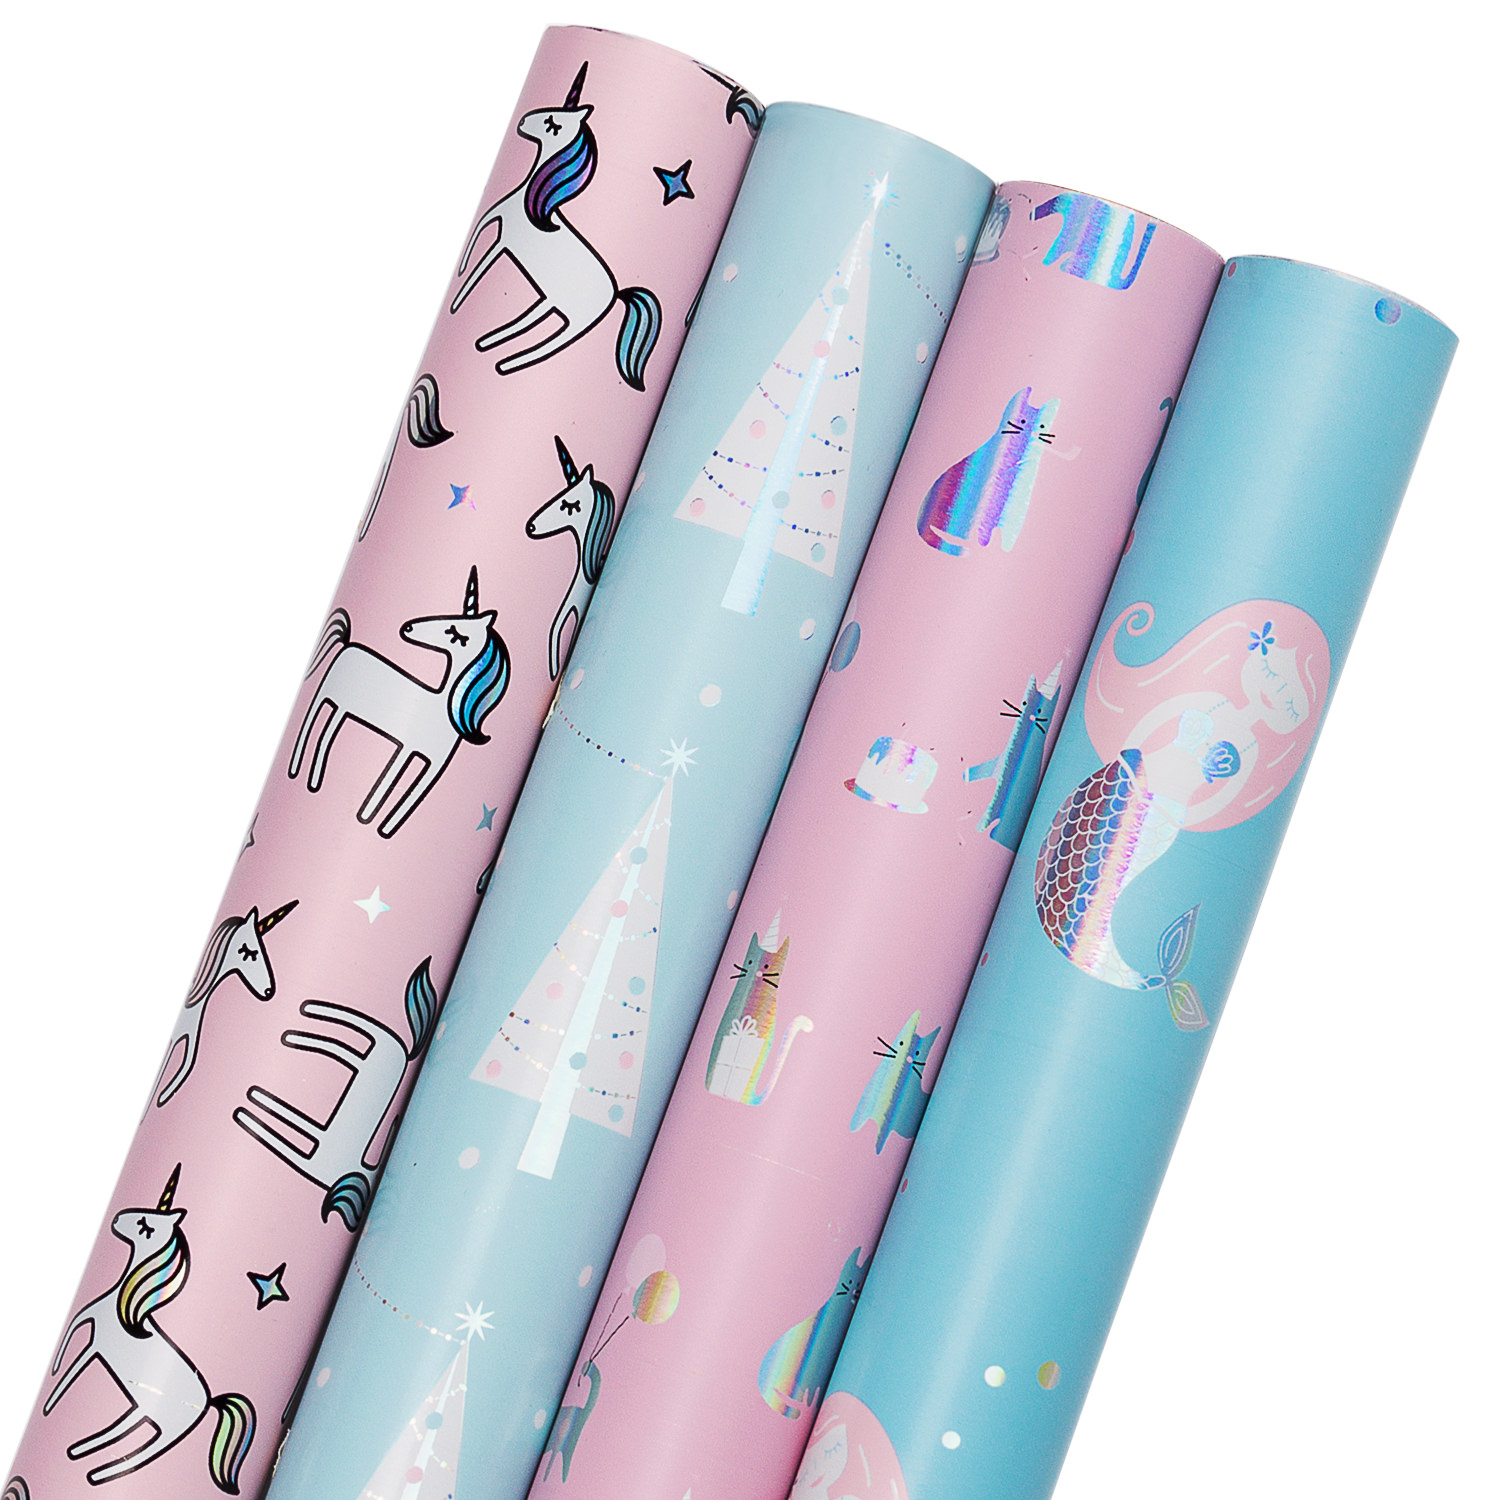 "LaRibbons Gift Wrapping Paper - Mermaid, Unicorn, Cat & Tree Collection 4 Rolls - 30"" x 120""/Roll"